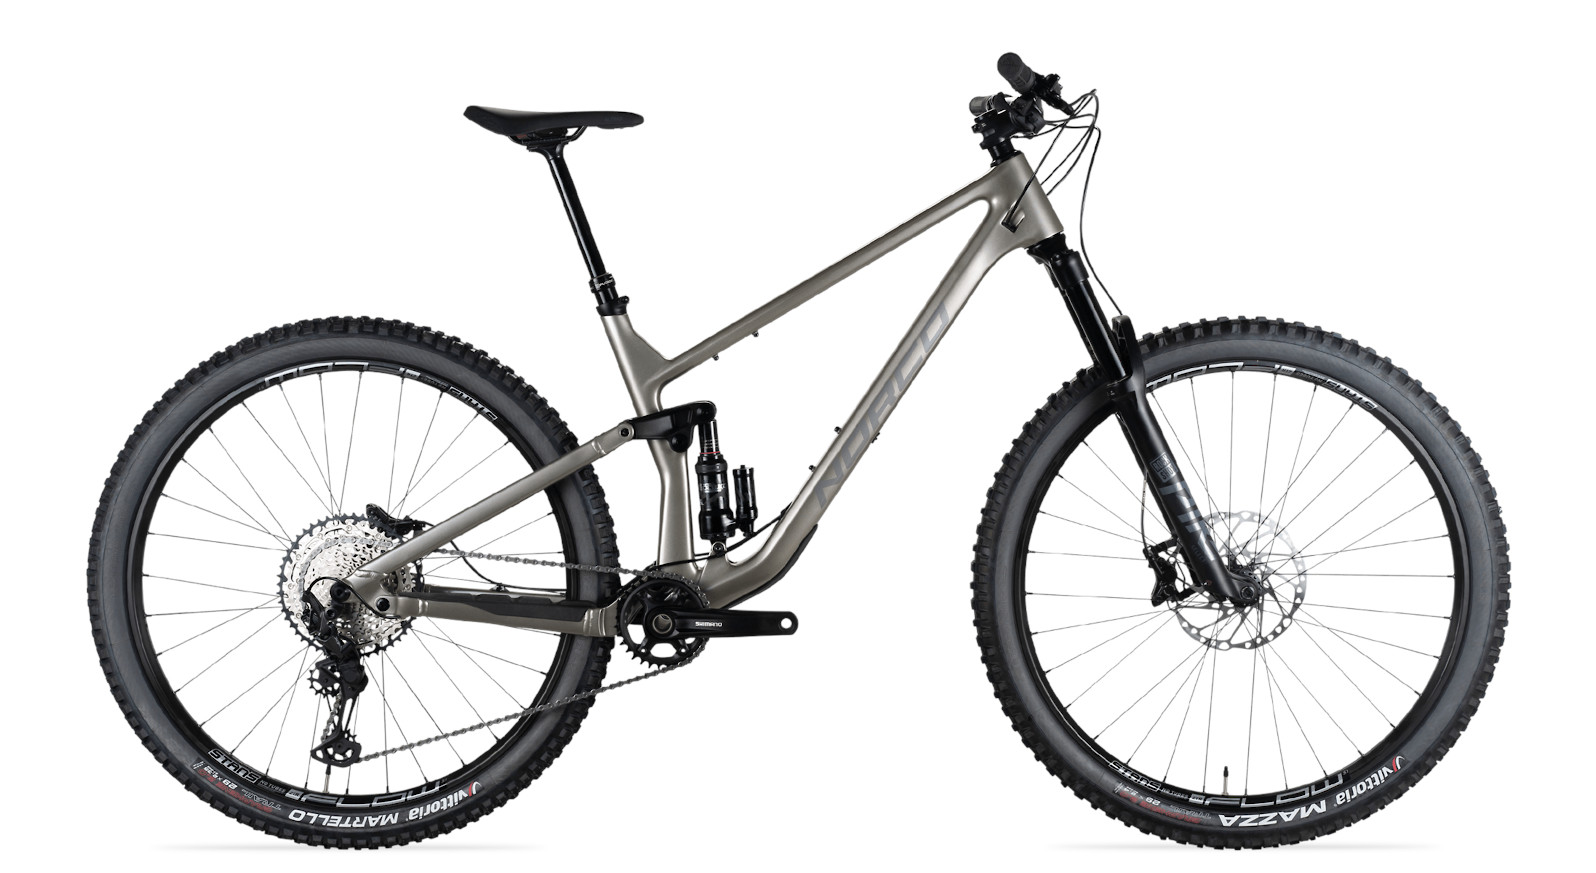 2021 Norco Optic C3 (Silver/Charcoal)